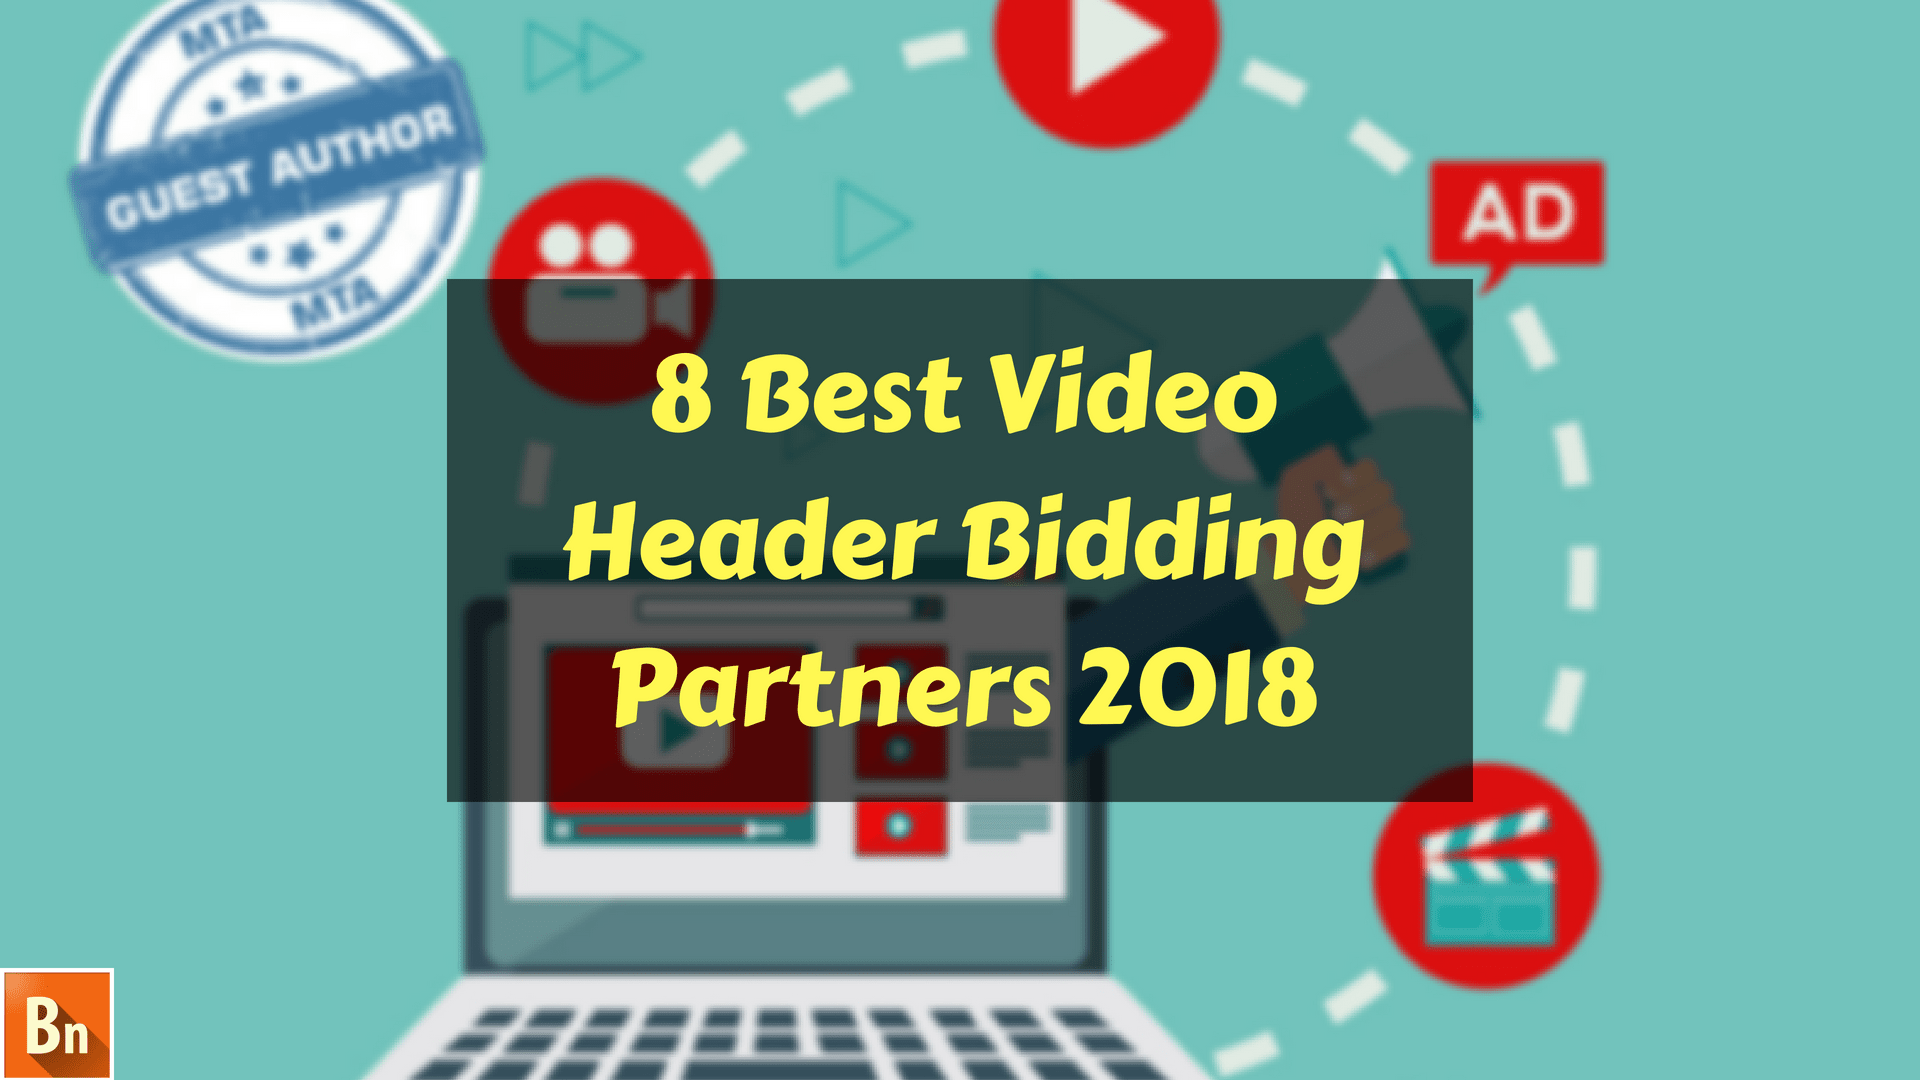 8 Best Video Header Bidding Partners 2018